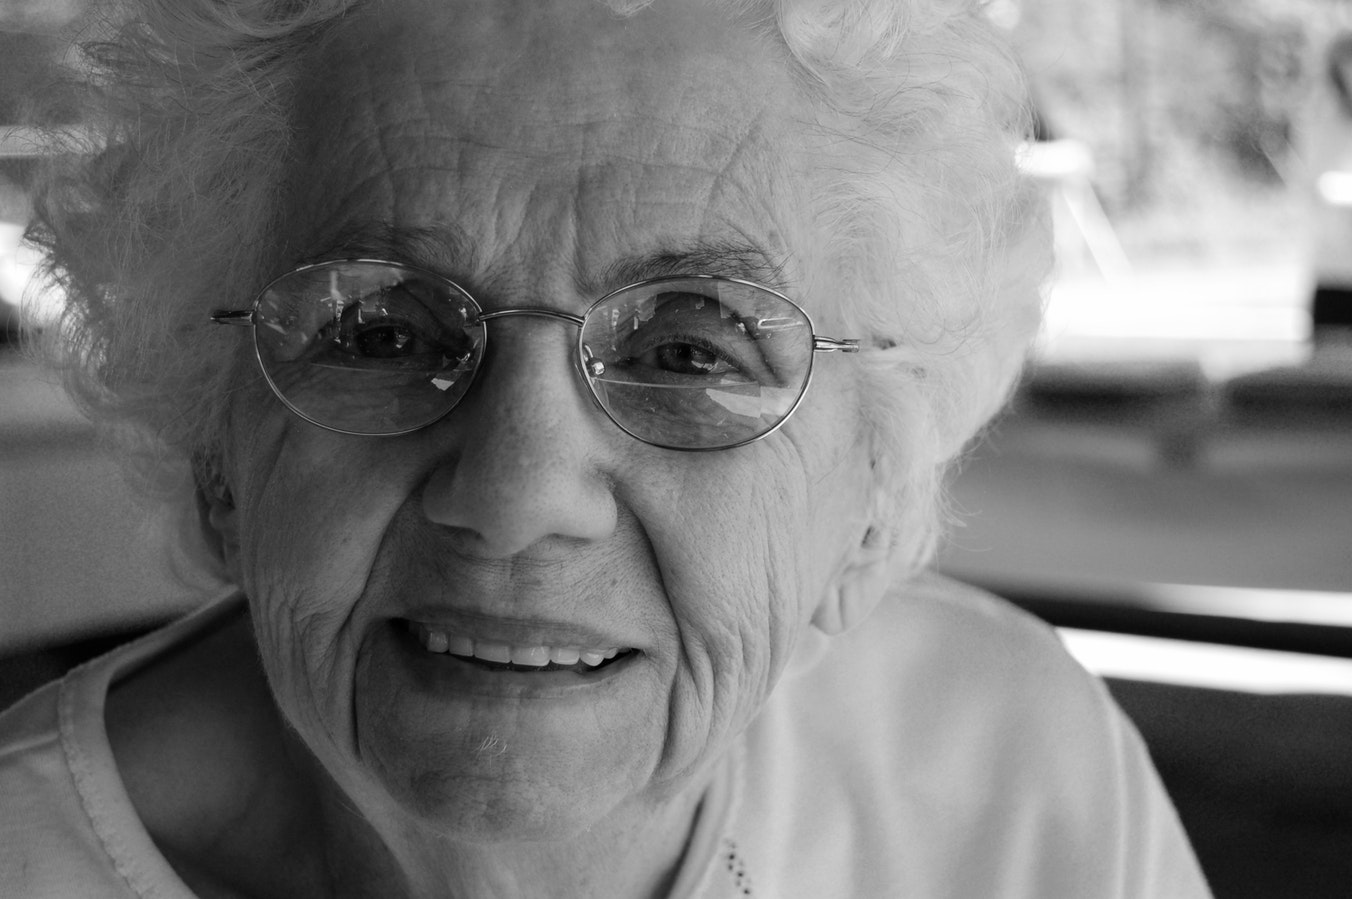 An elderly woman smiling. Having happy and healthy relationships with family can help improve well-being for seniors.